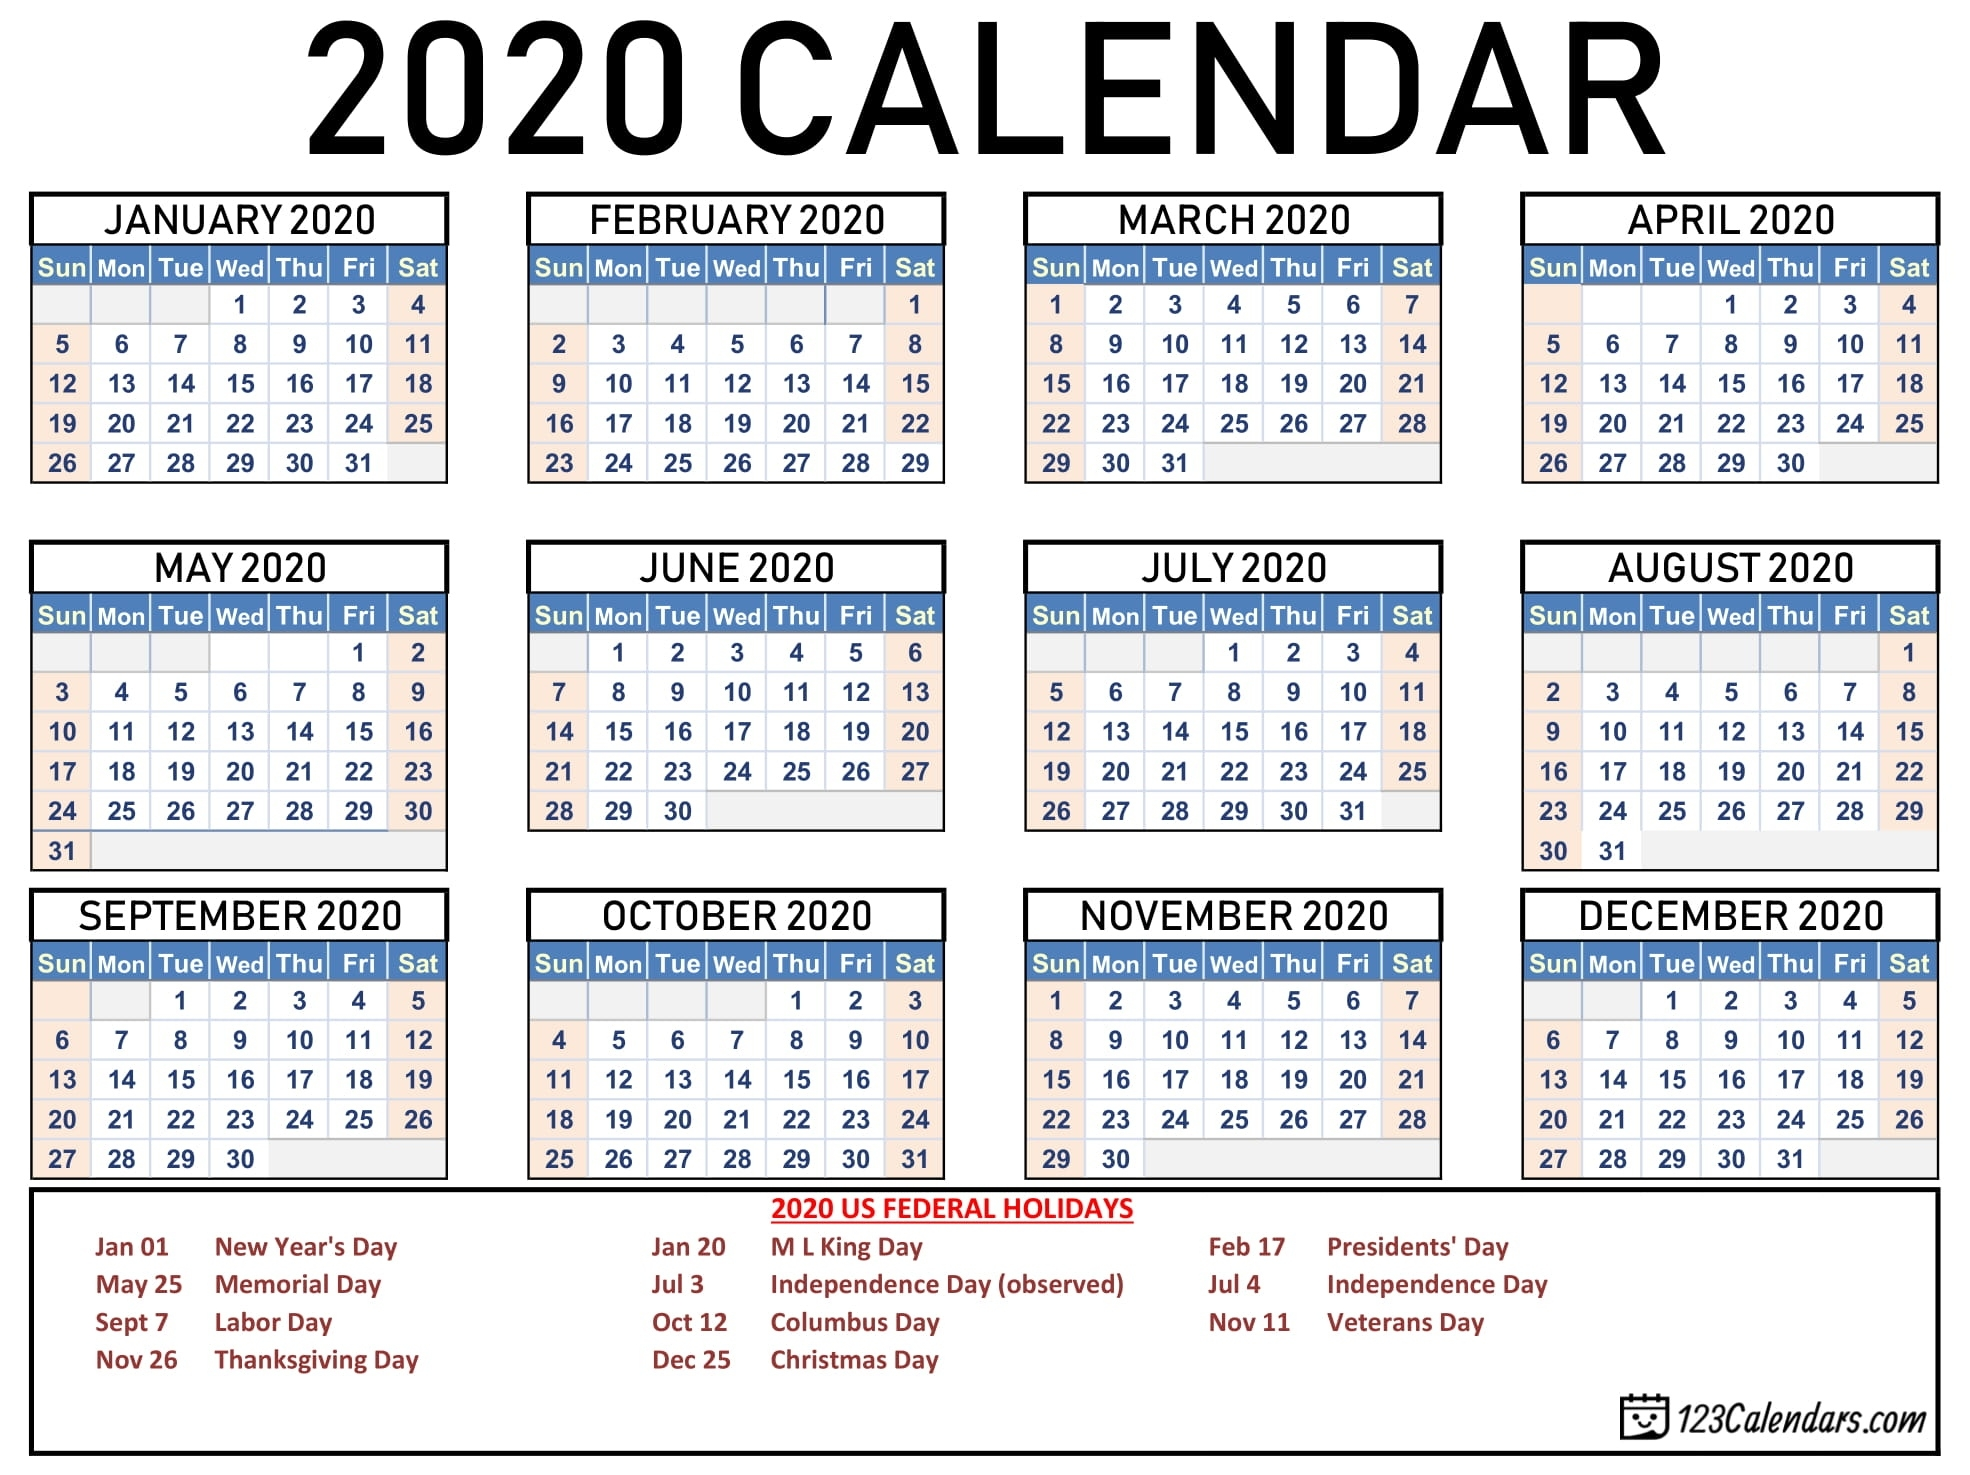 Free Printable 2020 Calendar | 123Calendars Free Printable Calenders With Legal Holidays